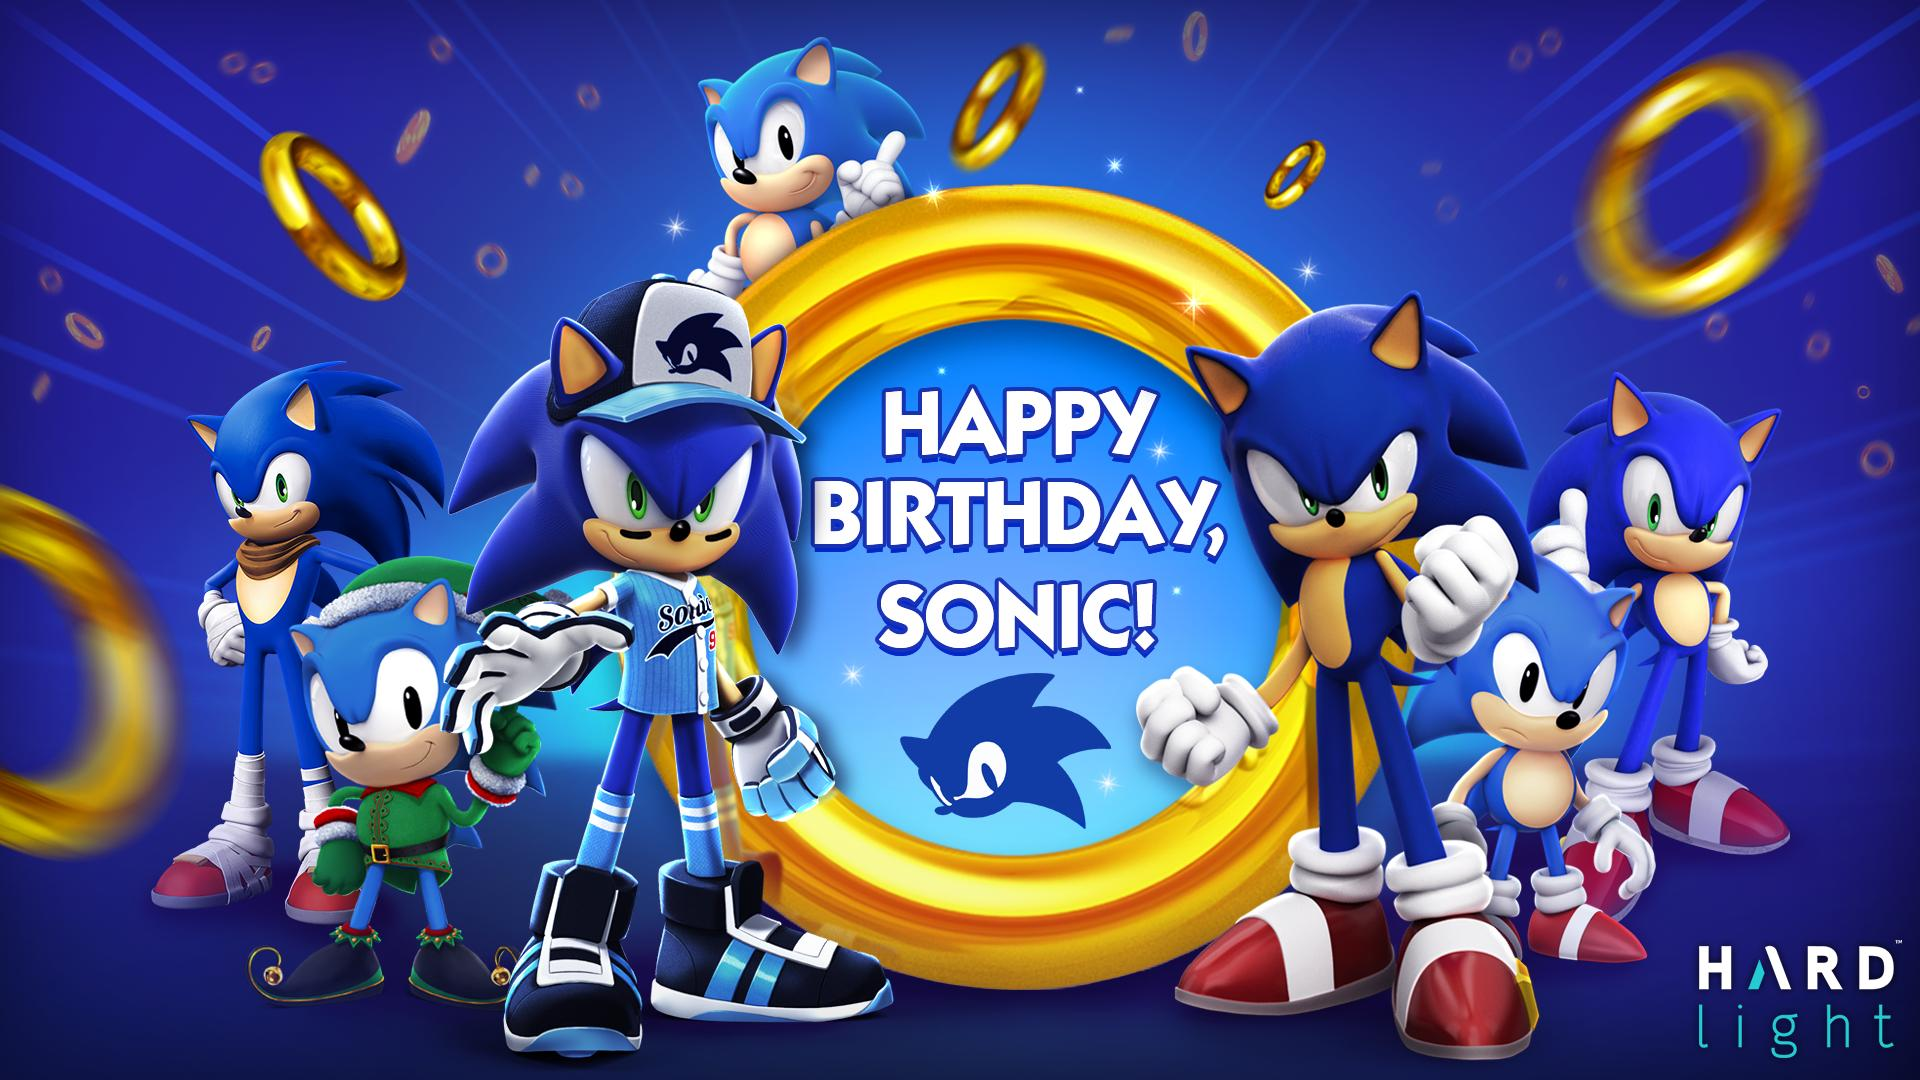 Sega Hardlight On Twitter Happy 28th Birthday To The Blue Blur Himself Sonic The Hedgehog Come Celebrate His Birthday With Us With Special Celebration Chests In Sonic Forces And